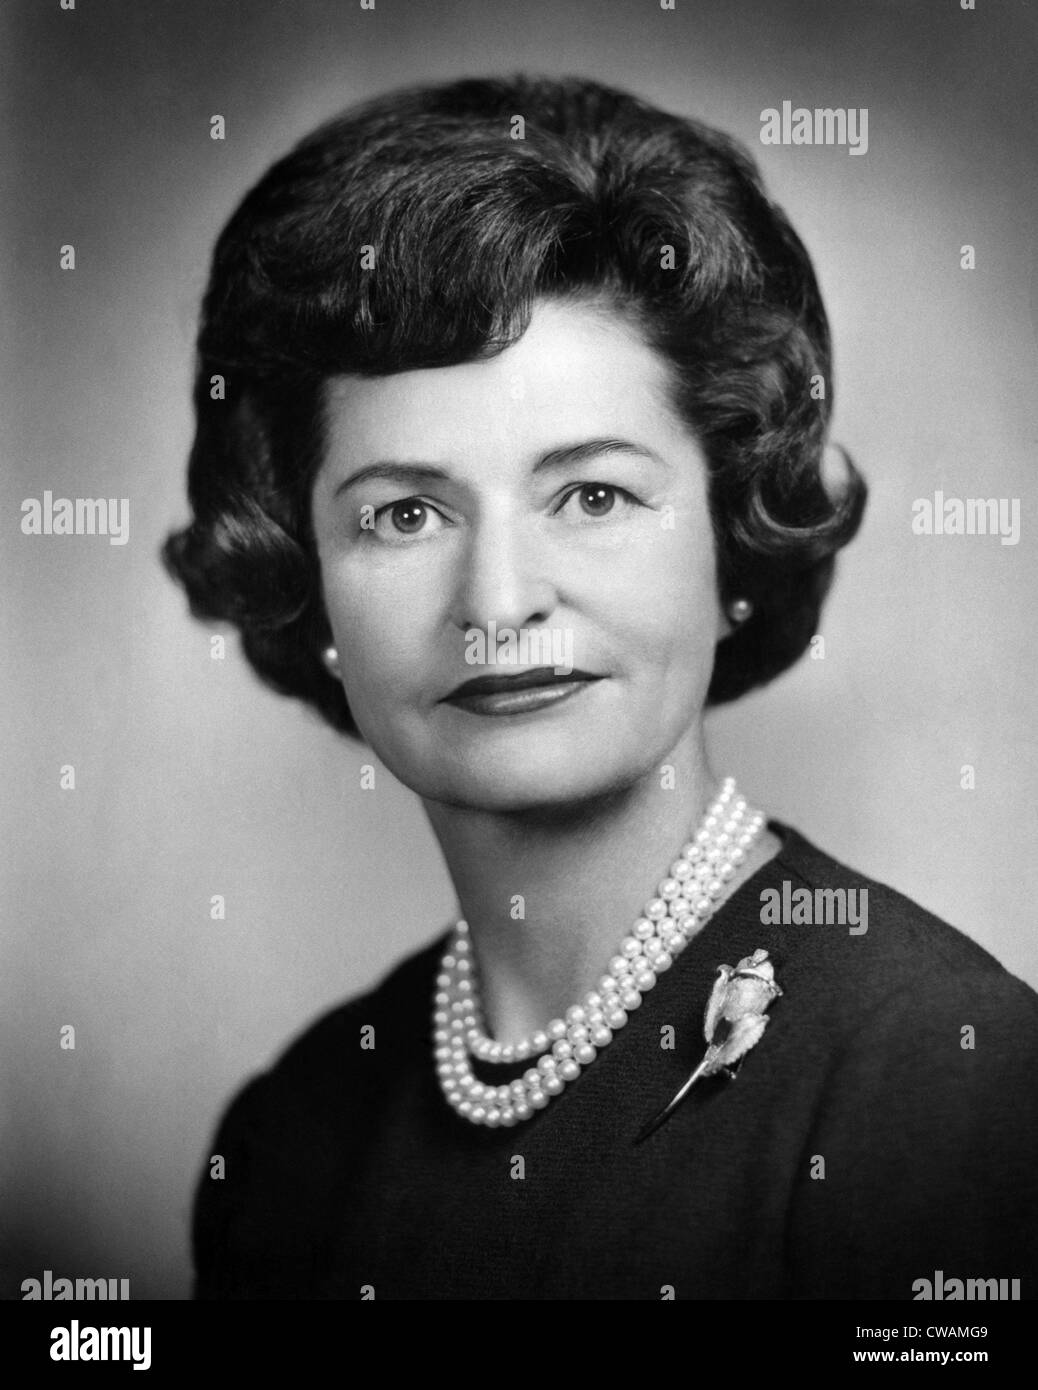 Lady Bird Johnson, ca.a principios de la década de 1960. Cortesía: CSU Archives/Everett Collection. Imagen De Stock